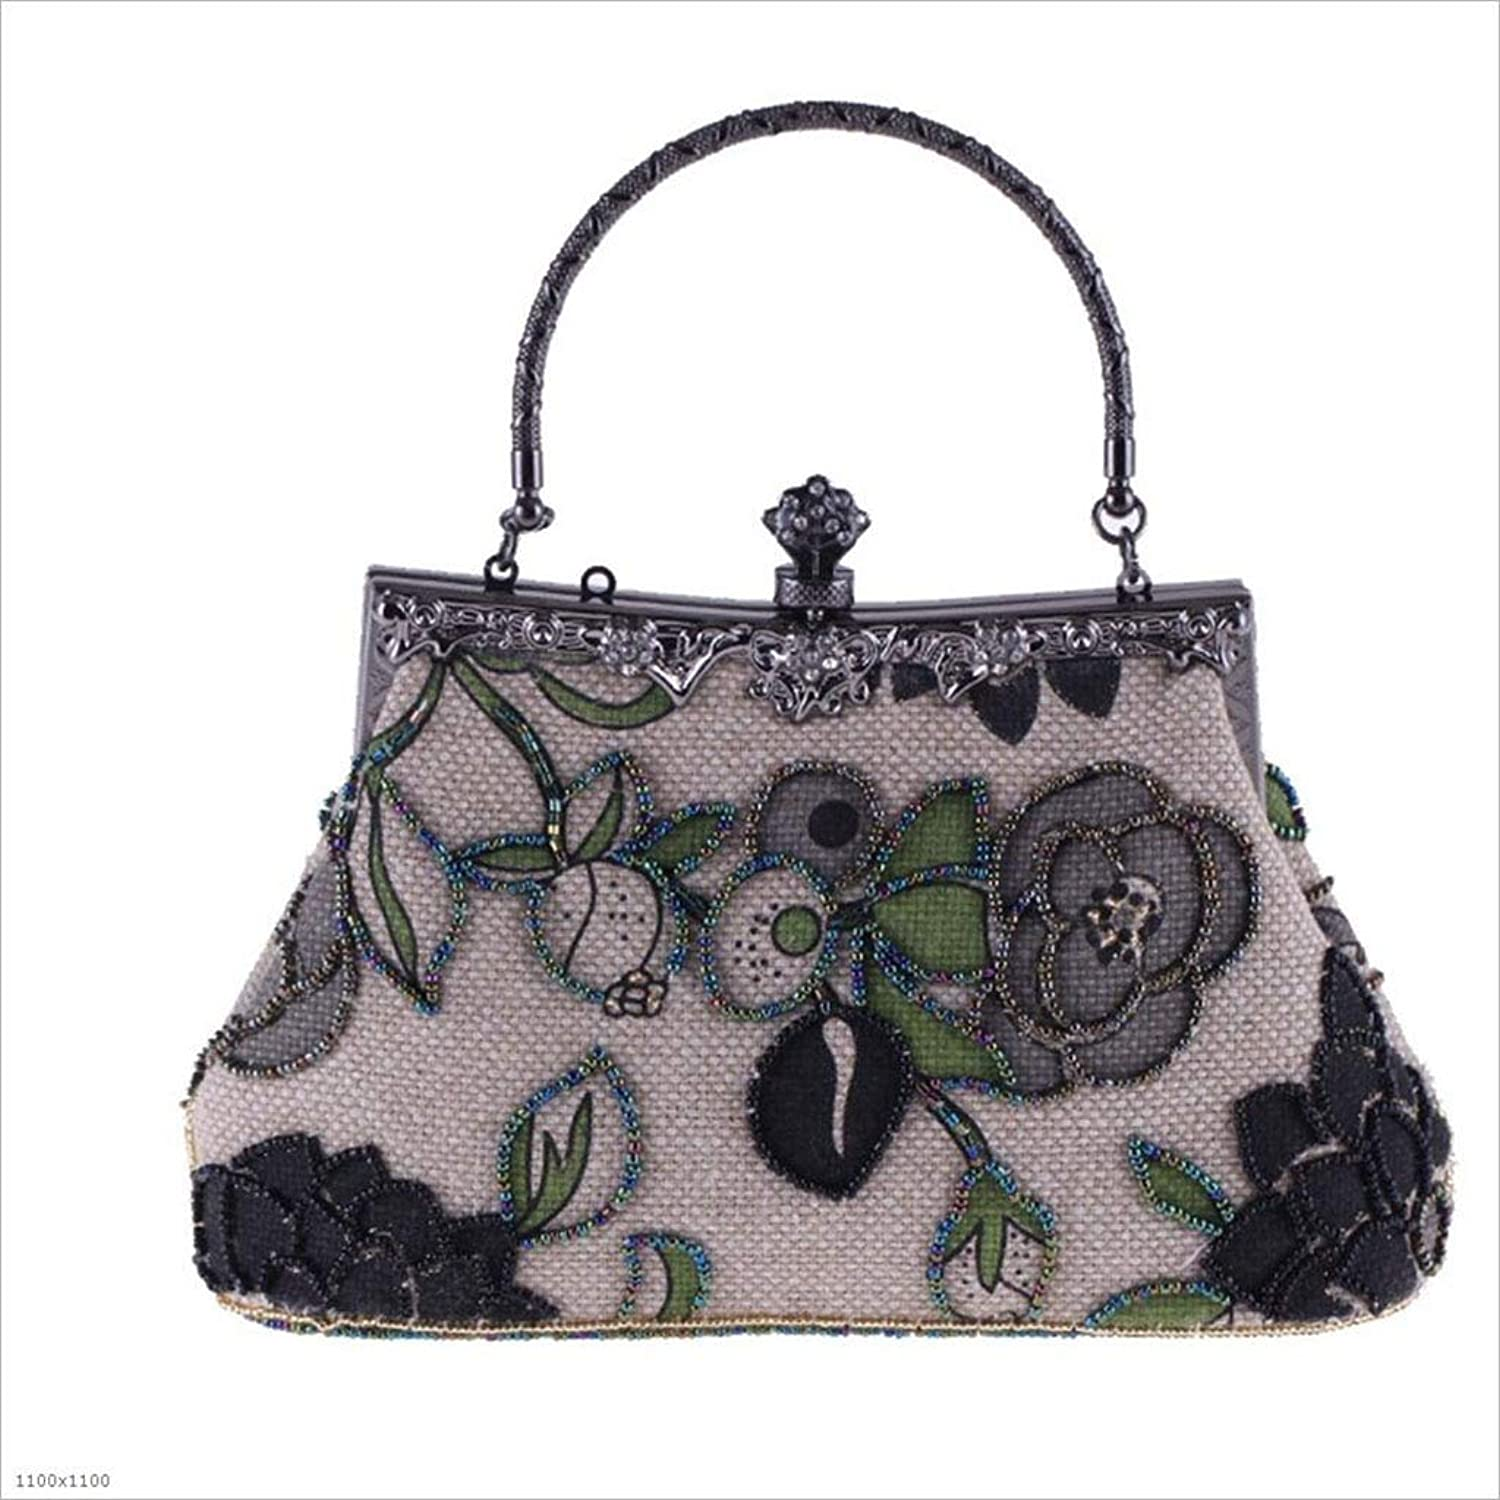 MYMAO damen es Evening Bag, Bag, Bag, damen es Bag, Beaded Bag, National Style Casual Evening Bag, Handtasche,schwarz B07PJYFQ7J  Haltbarkeit fd5c79